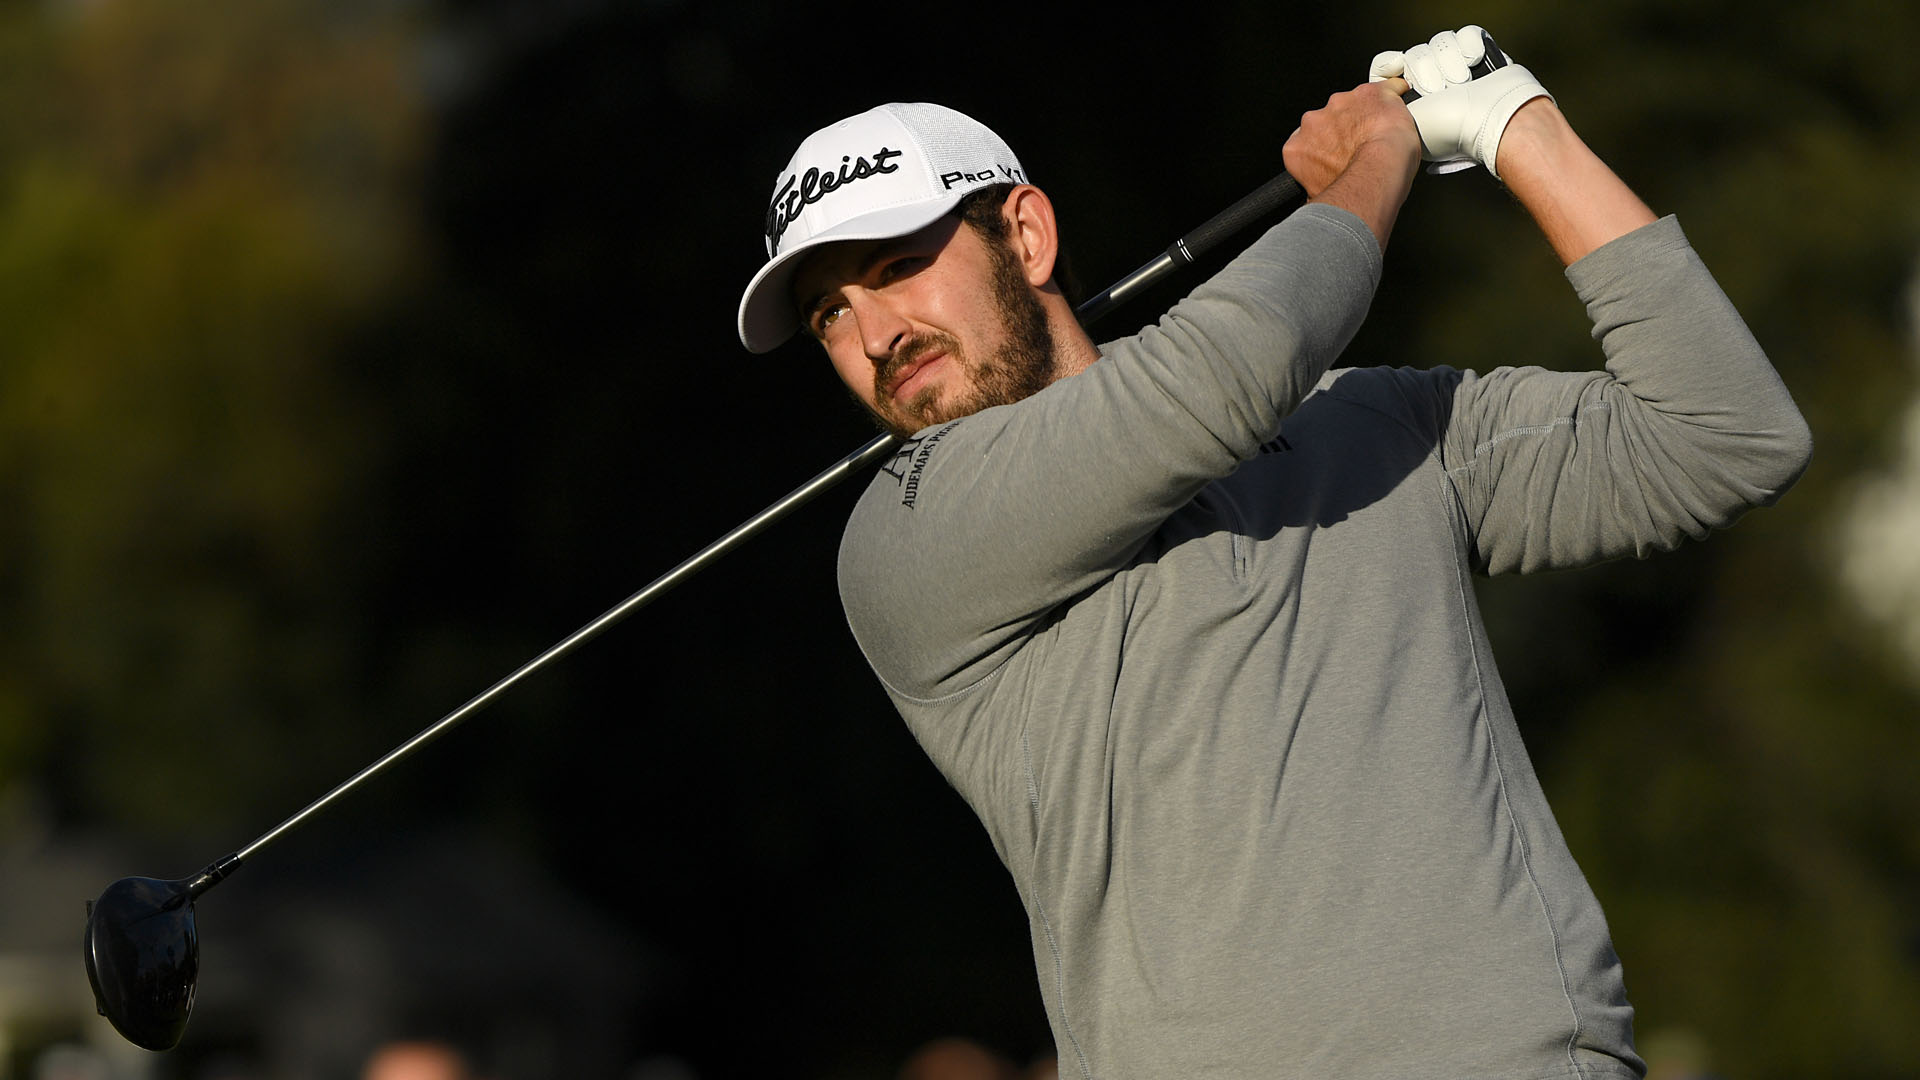 WATCH: Cantlay goes close to hole-in-one on par four